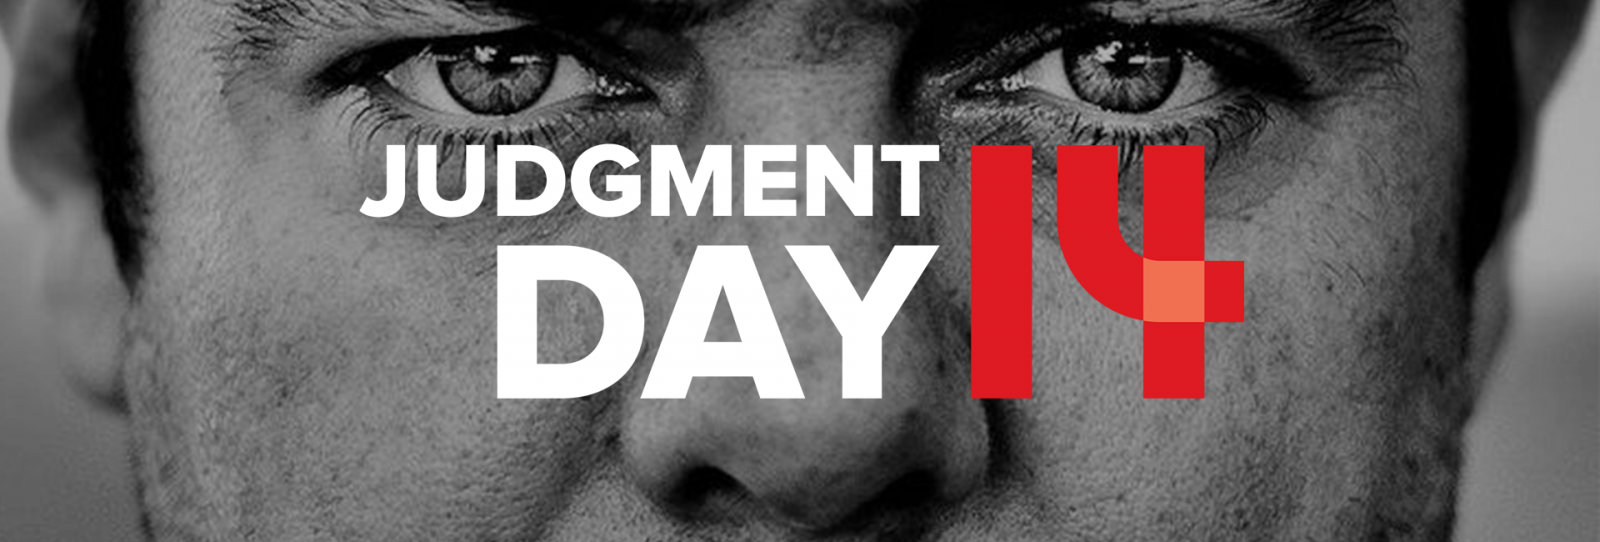 Judgement Day 14